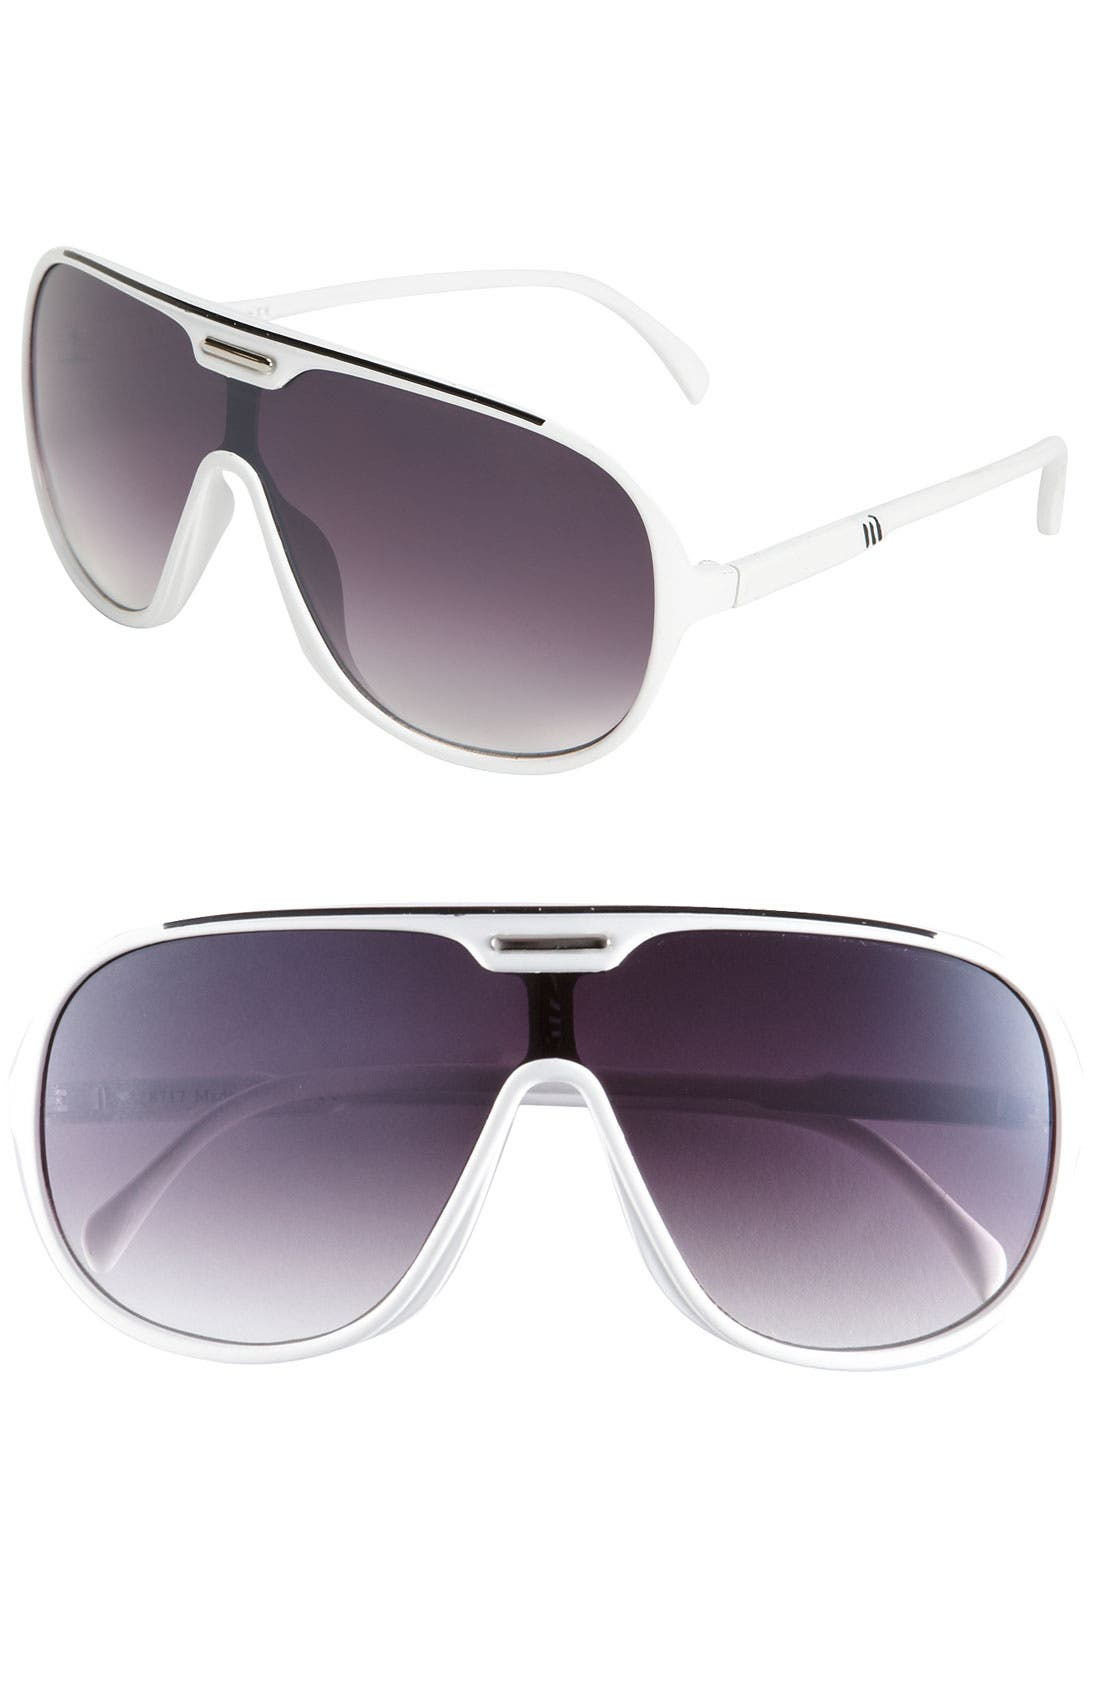 Main Image - KW 'Viper' Aviator Sunglasses